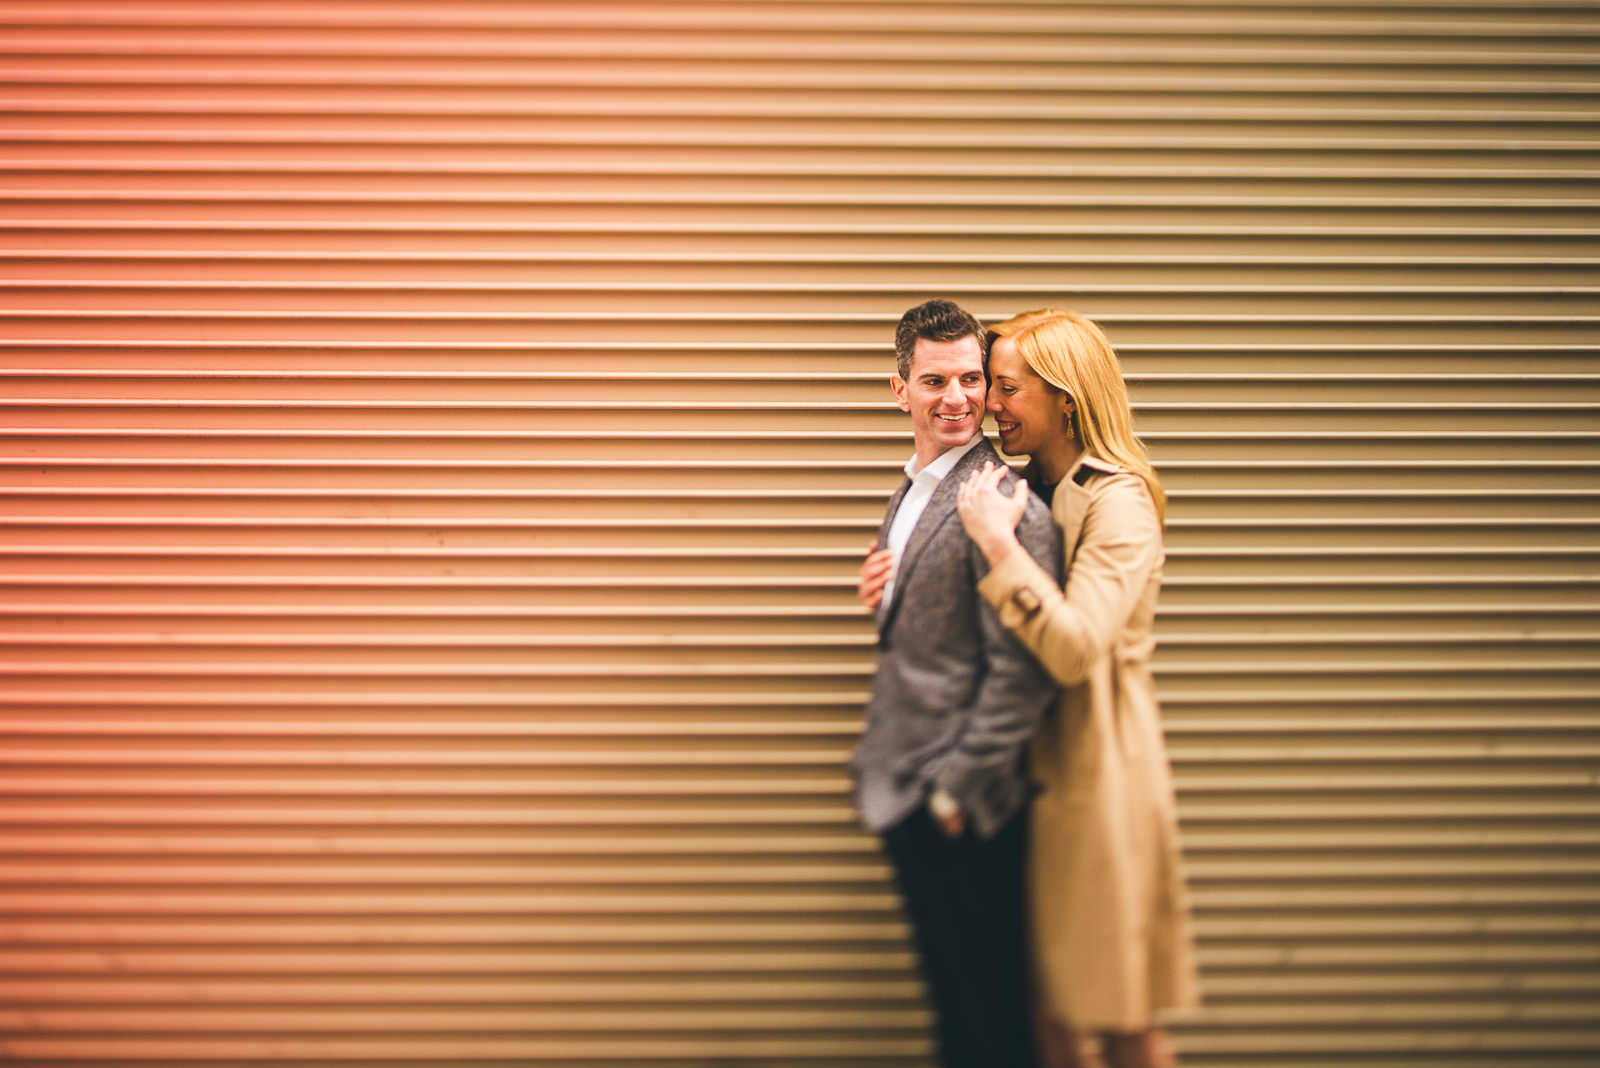 Megan + Bob // Chicago River North Engagement Session at Shaws Crab House